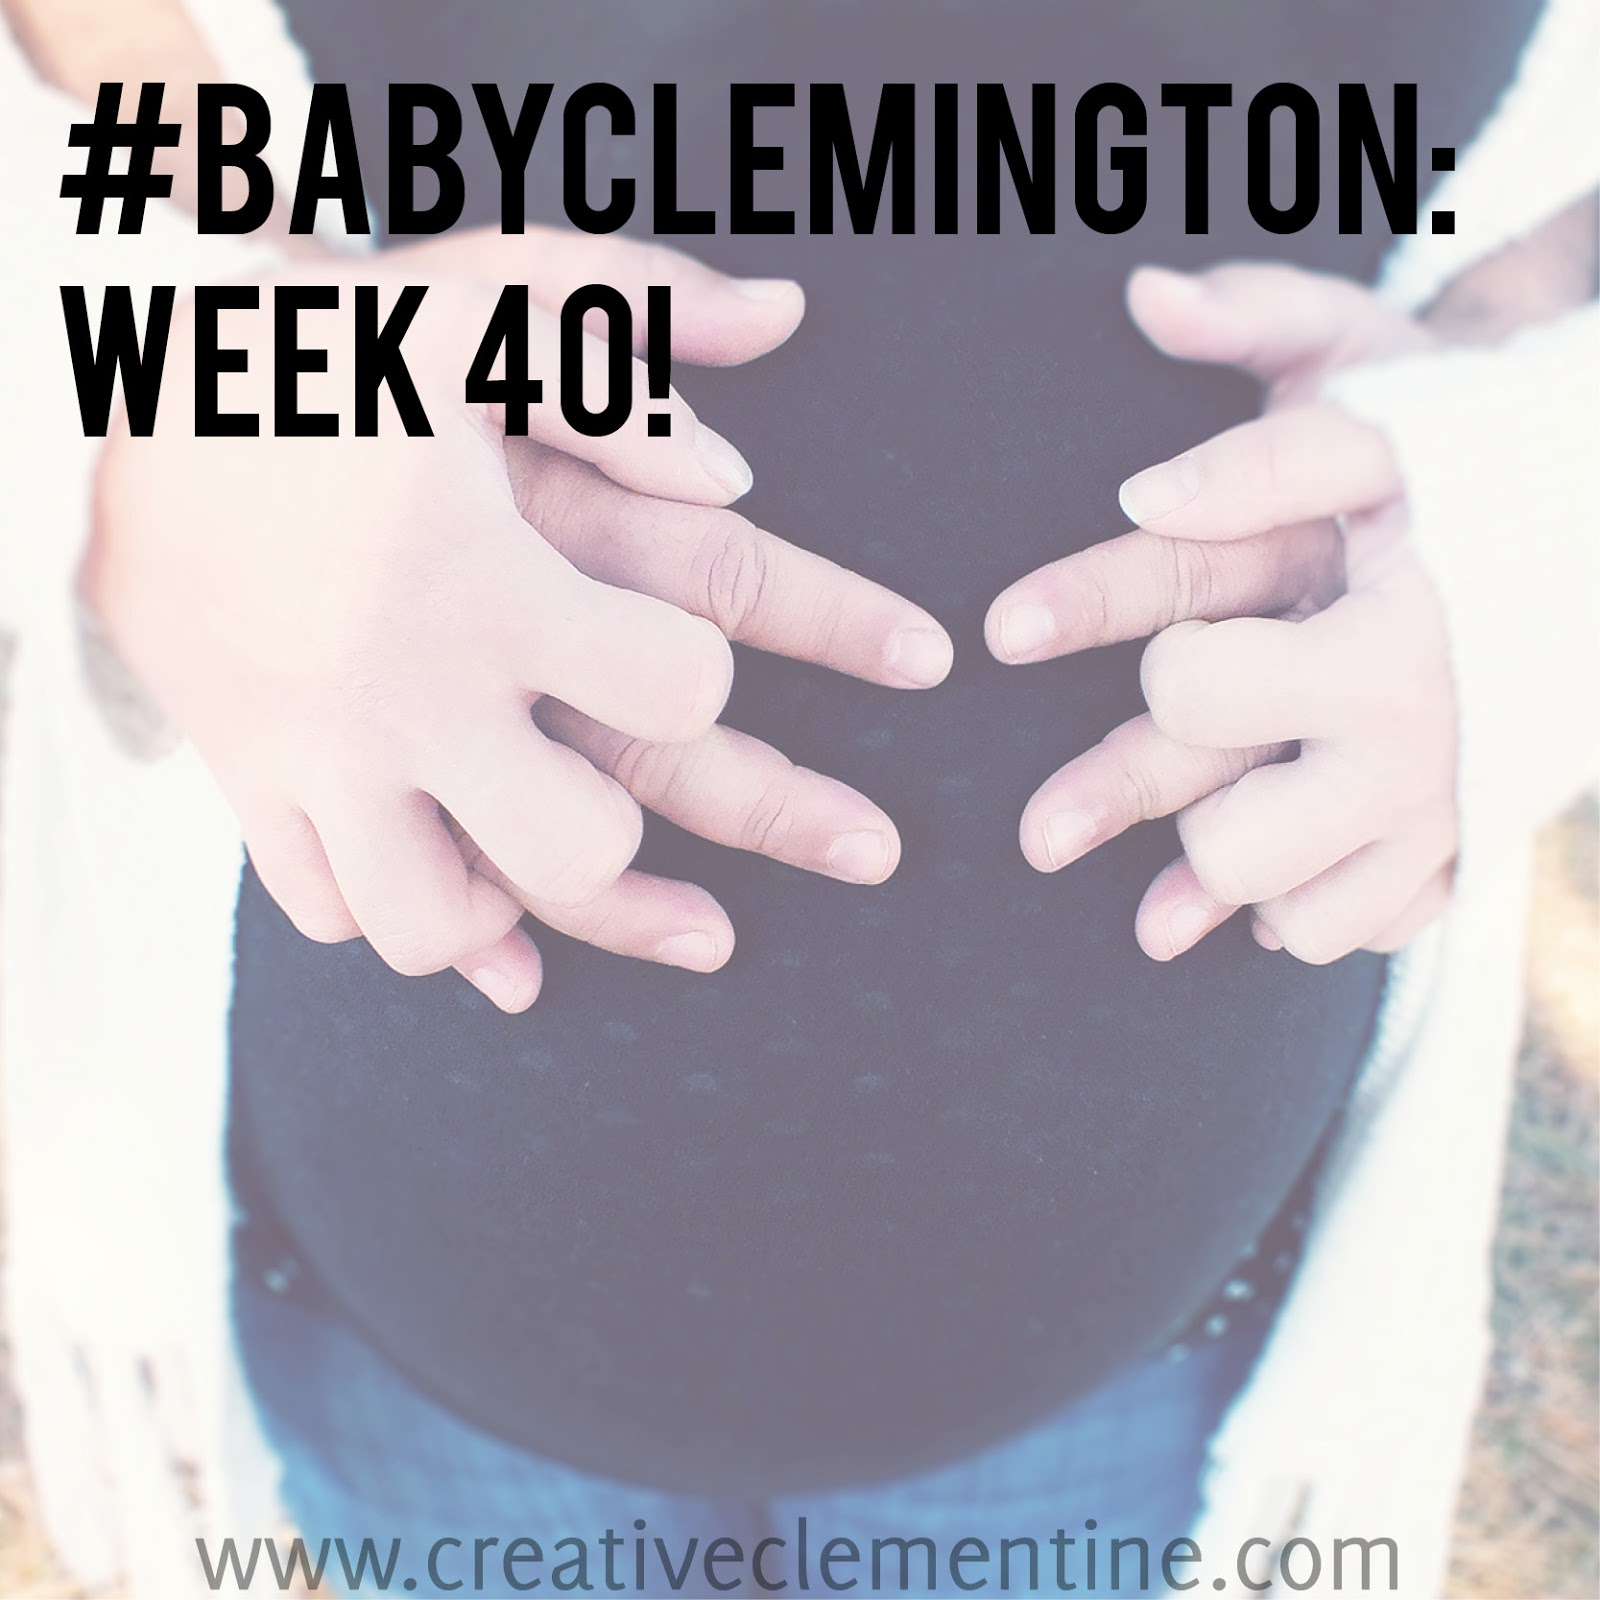 #BabyClemington: 40 weeks pregnant and ready to POP!